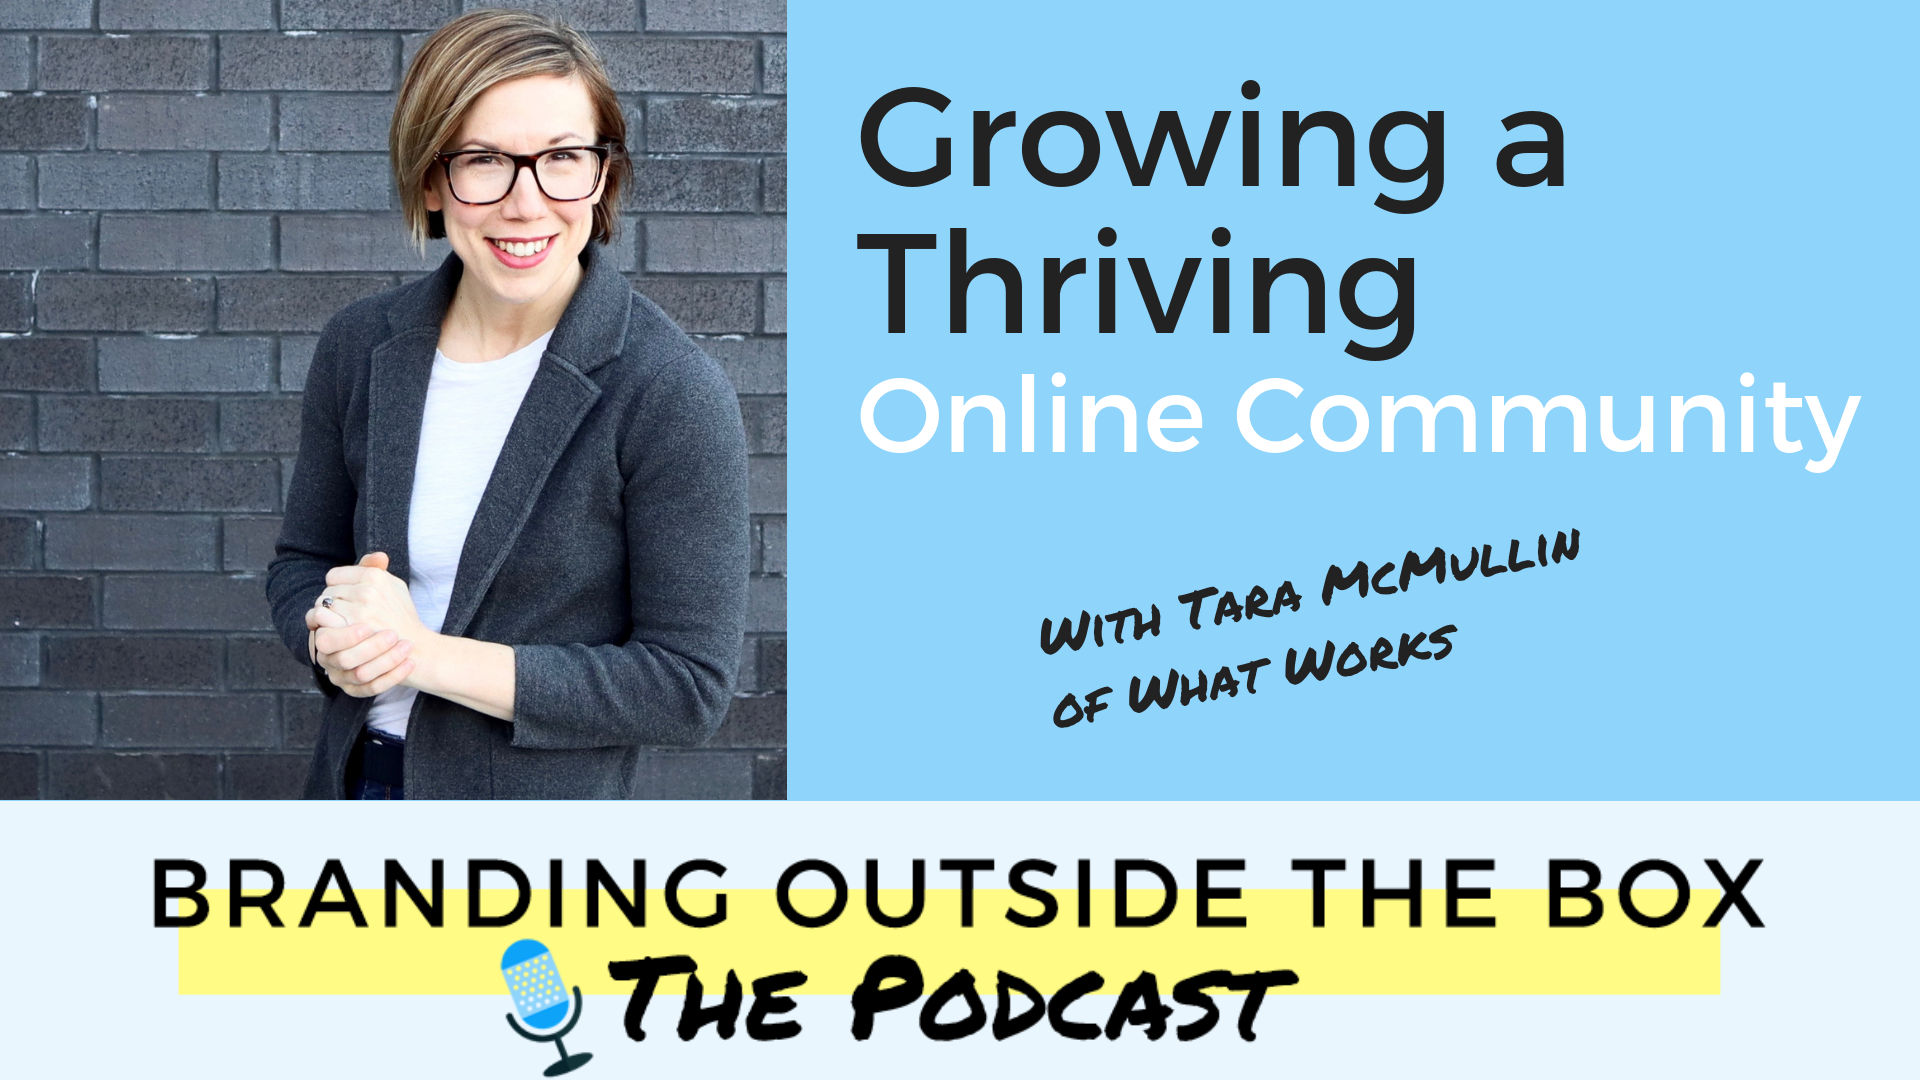 Growing a Thriving Online Community